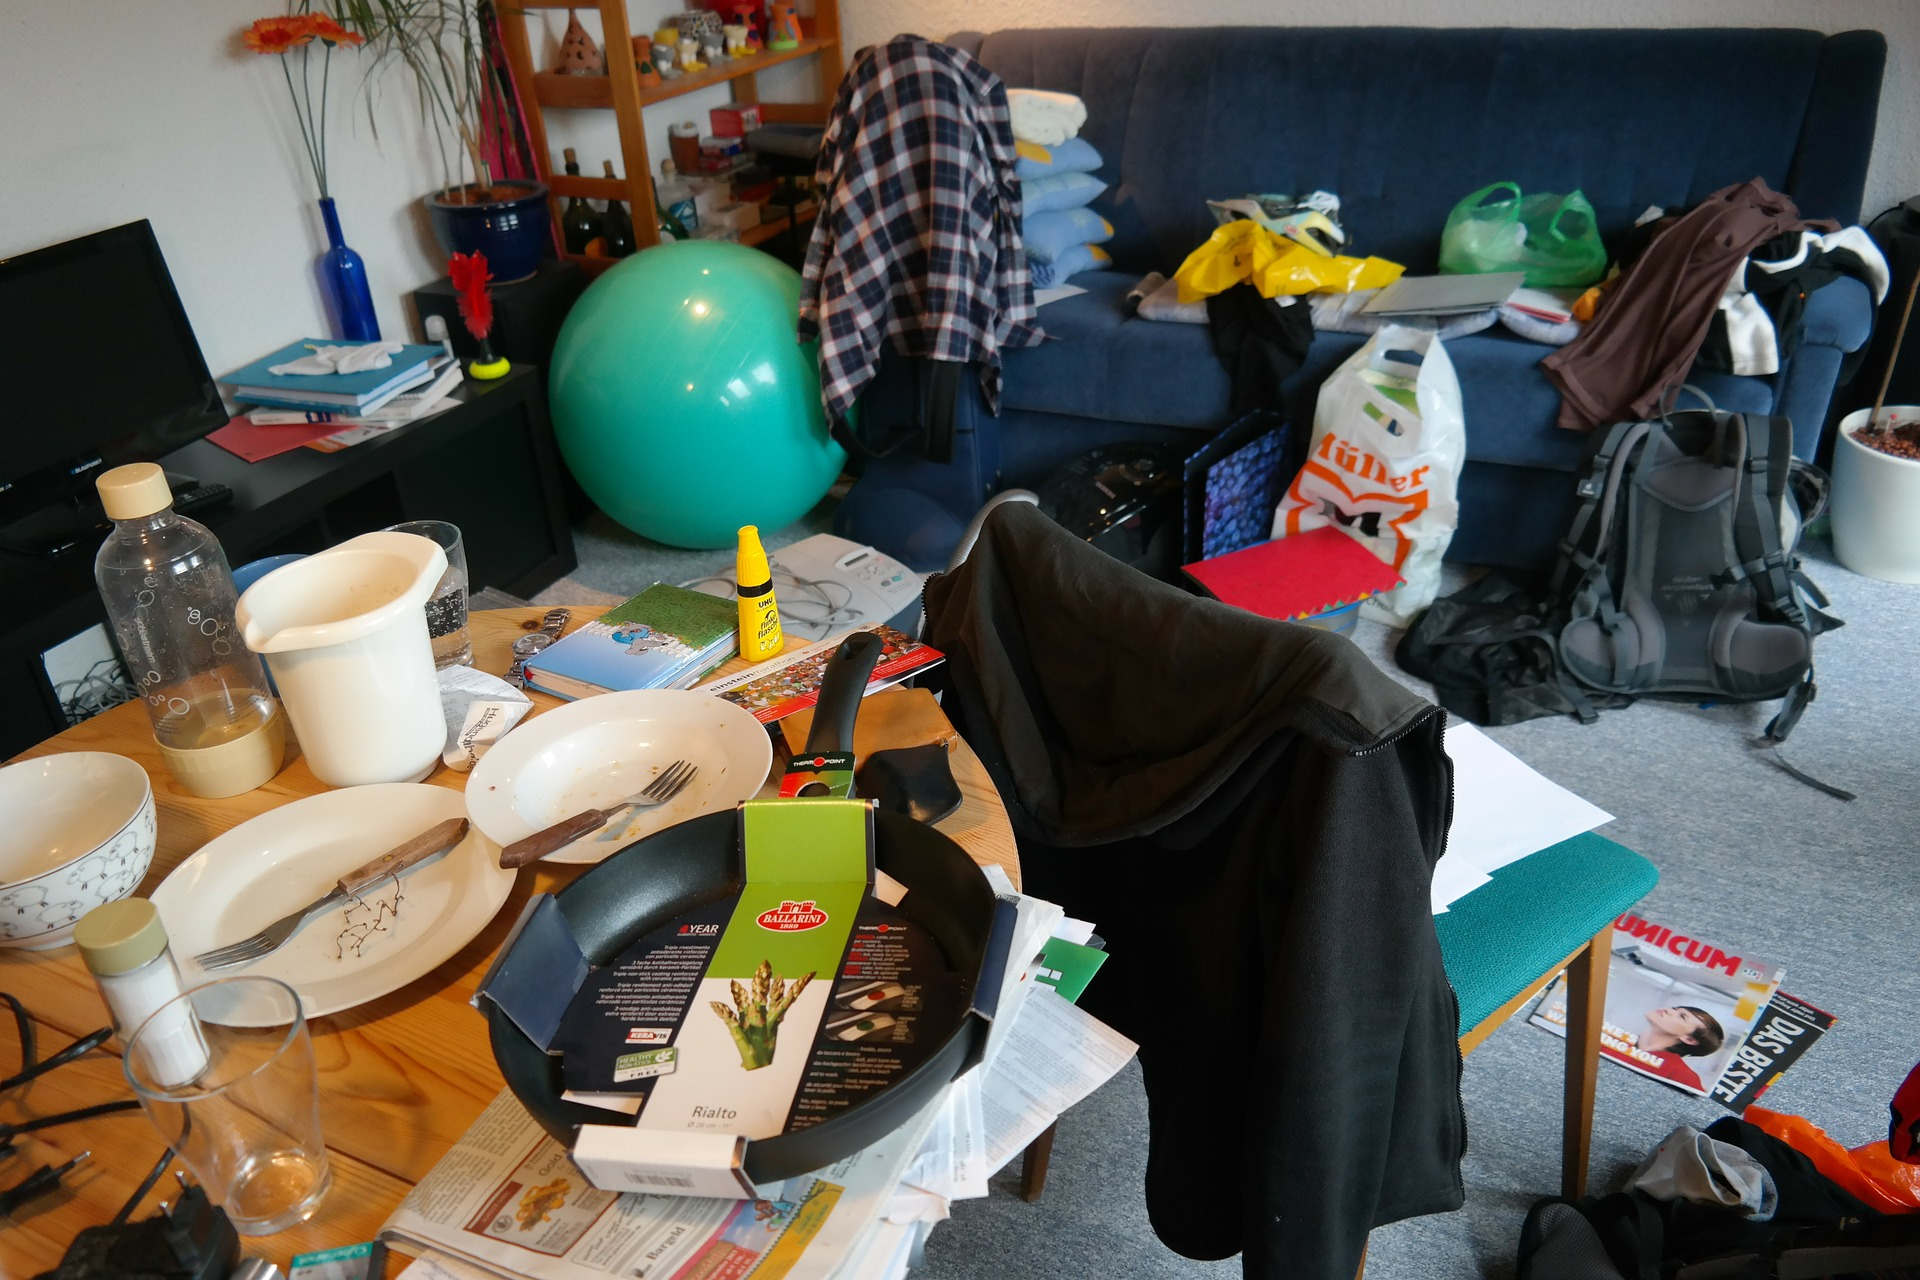 dirty room full of clutter